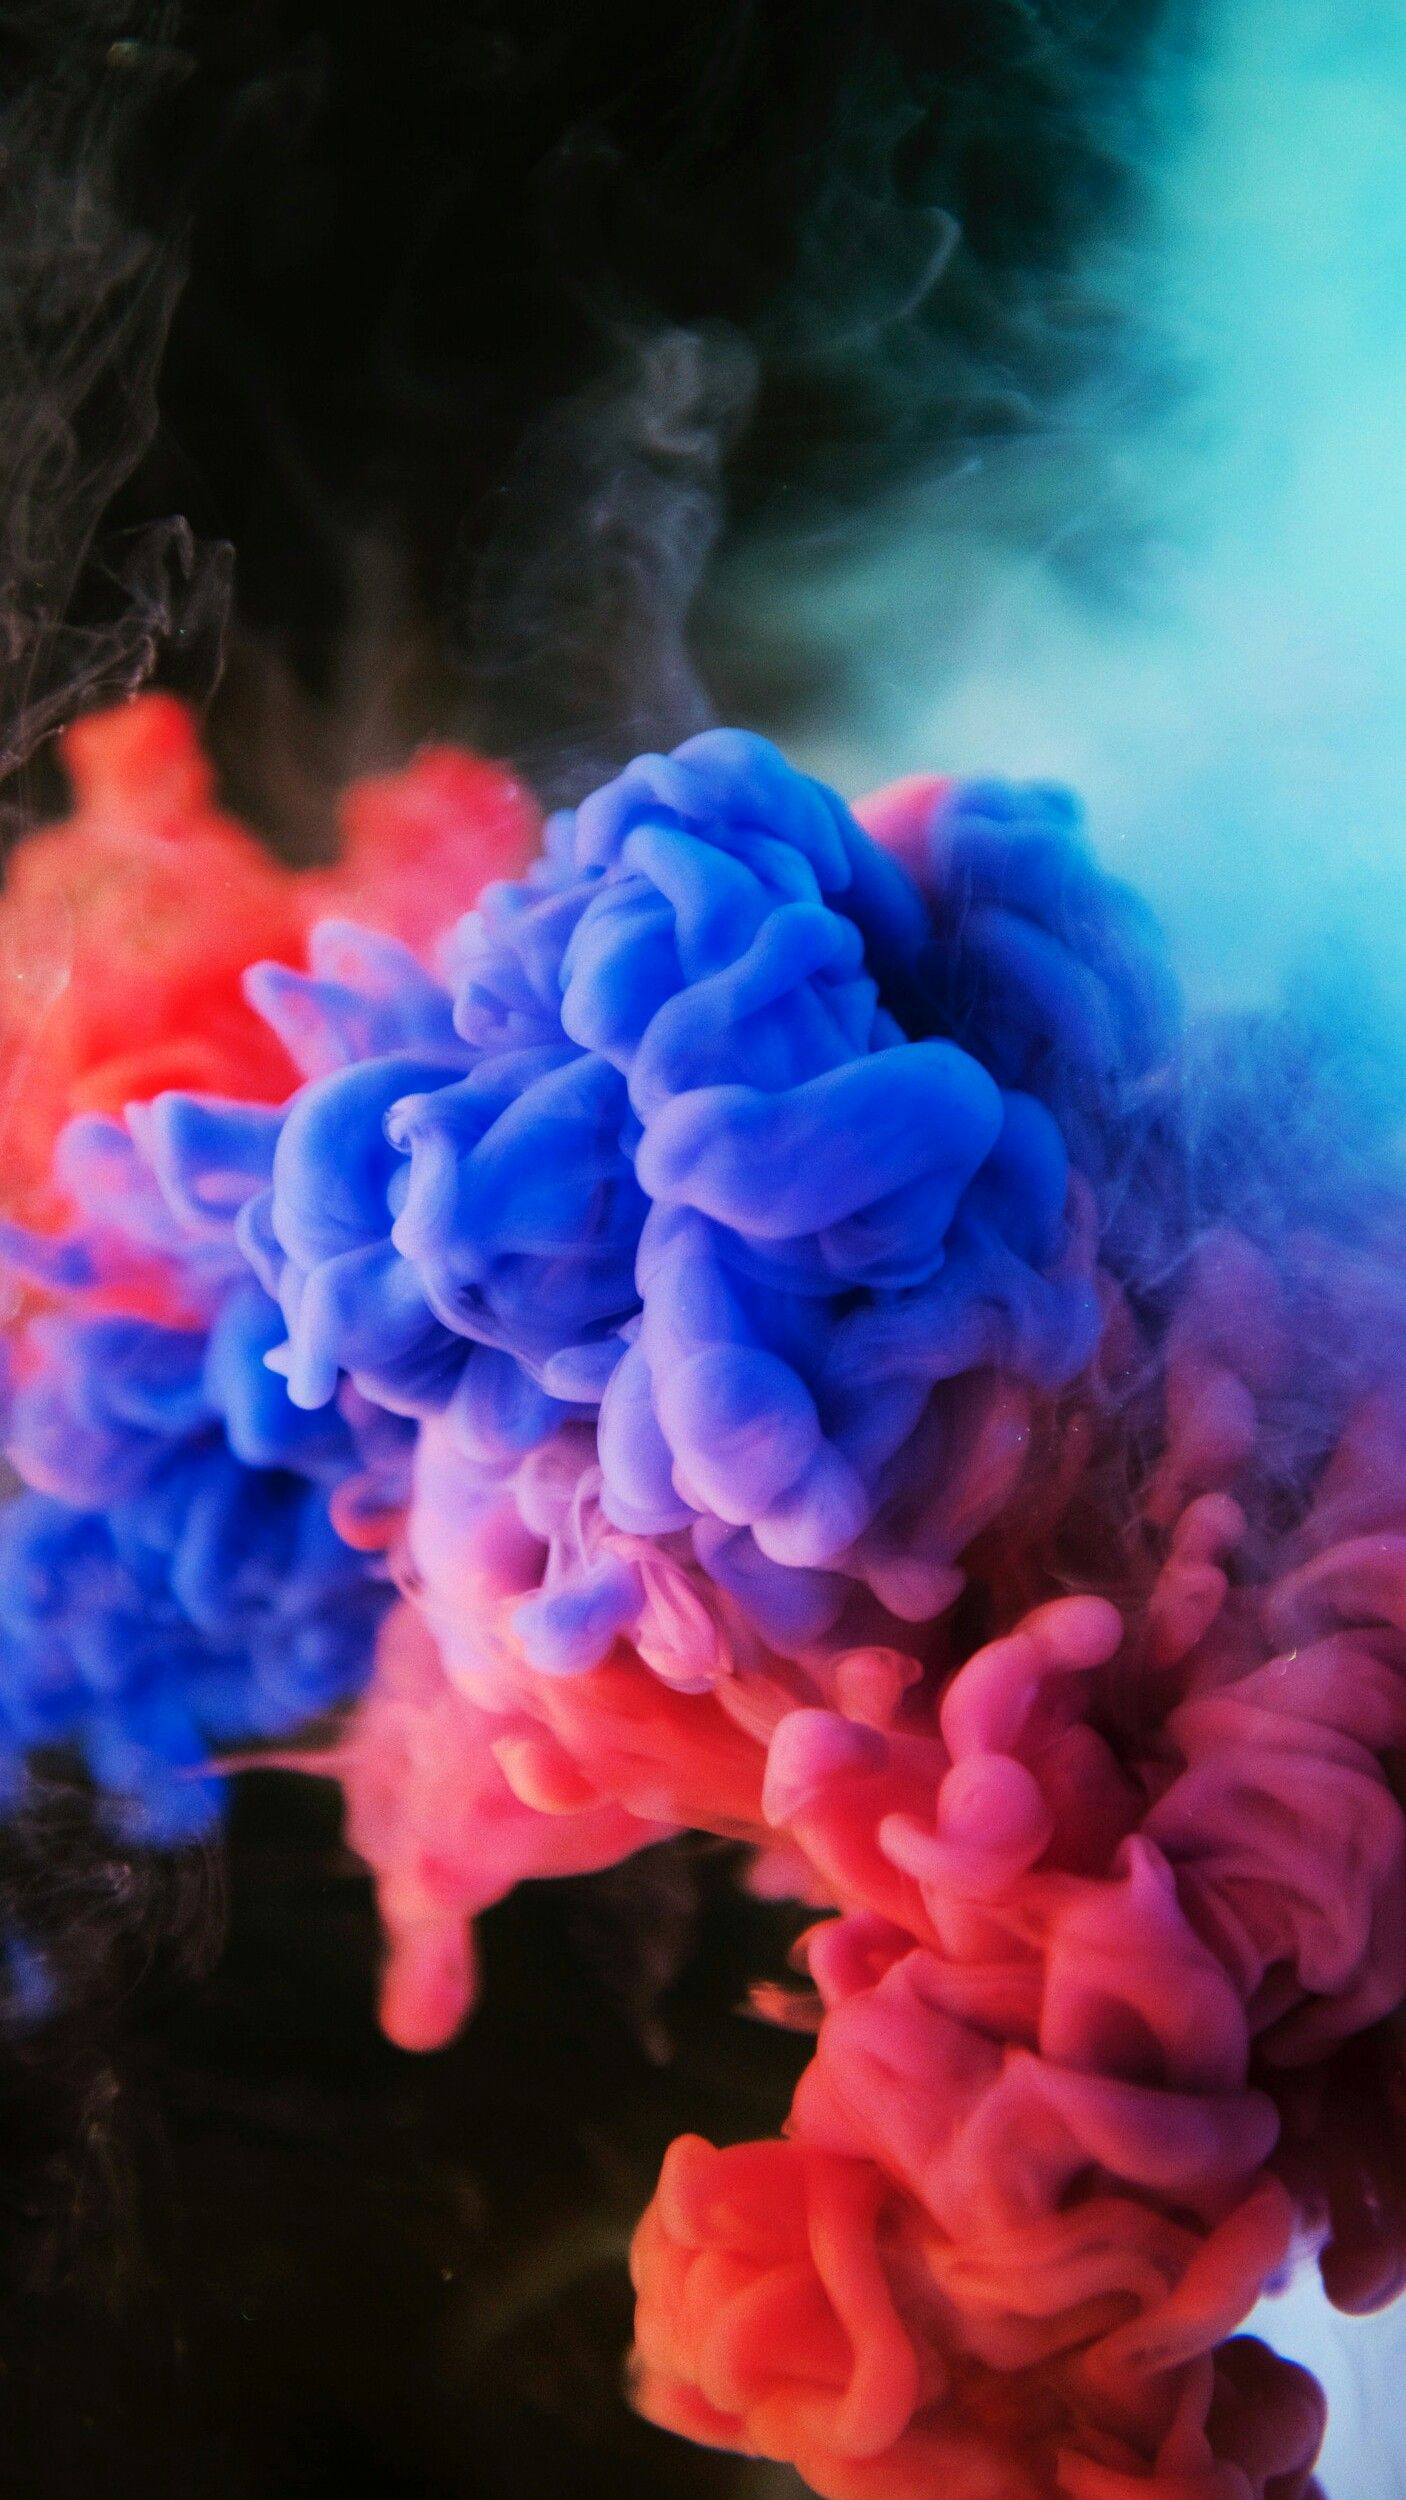 Pin By Iyan Sofyan On Smoke Pictures Colored Smoke Smoke Pictures Smoke Wallpaper